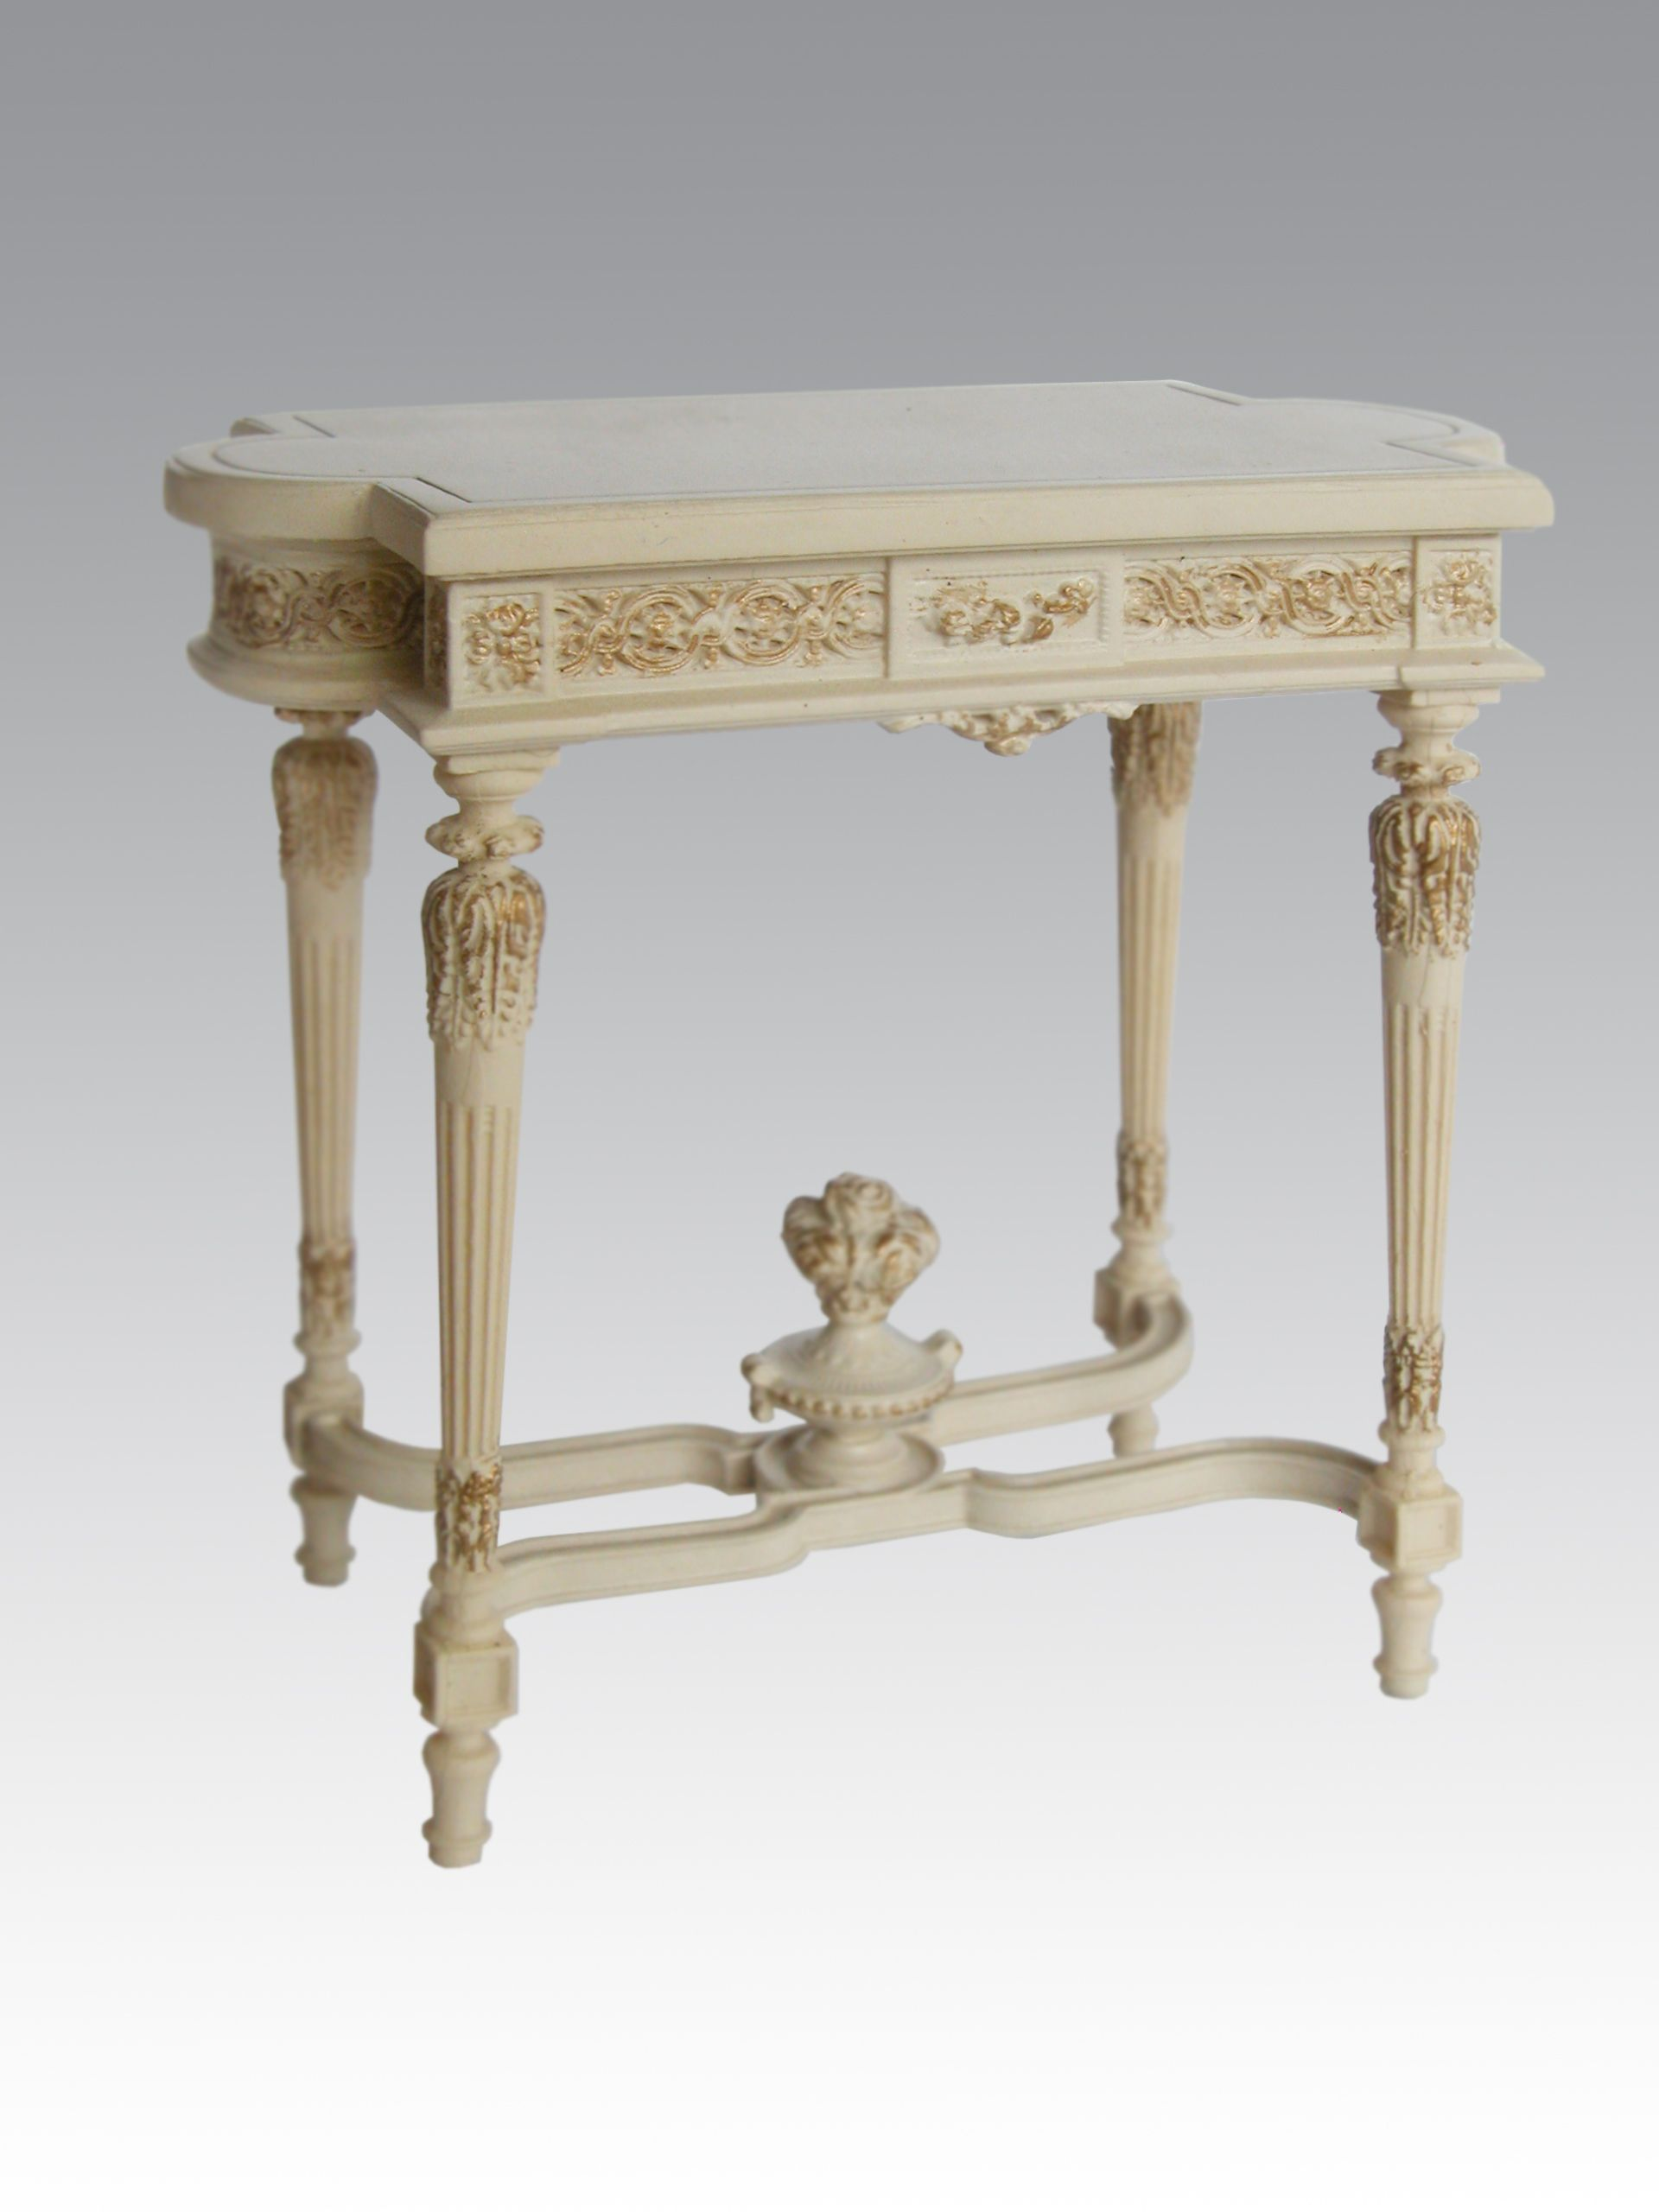 18th Century French Console Table by Alison Davies www